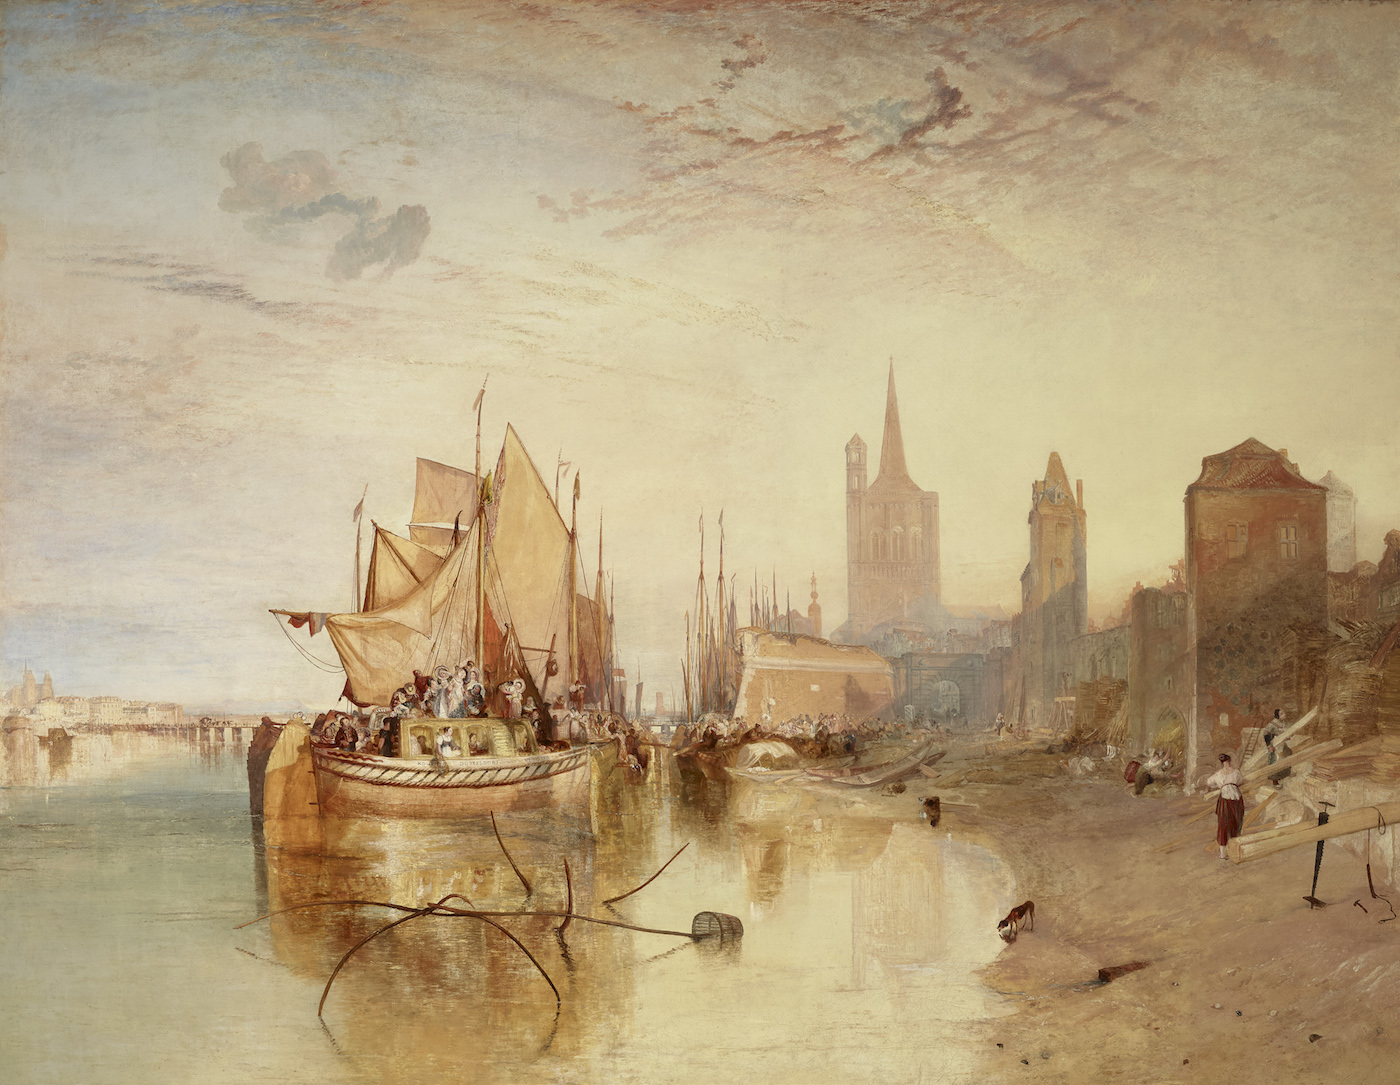 J.M.W. Turner, Cologne, the Arrival of a Packet-Boat: Evening (exhibited 1826), oil on canvas, 66 3/8 x 88 1/4 inches (courtesy the Frick Collection, New York; photo by Michael Bodycomb)